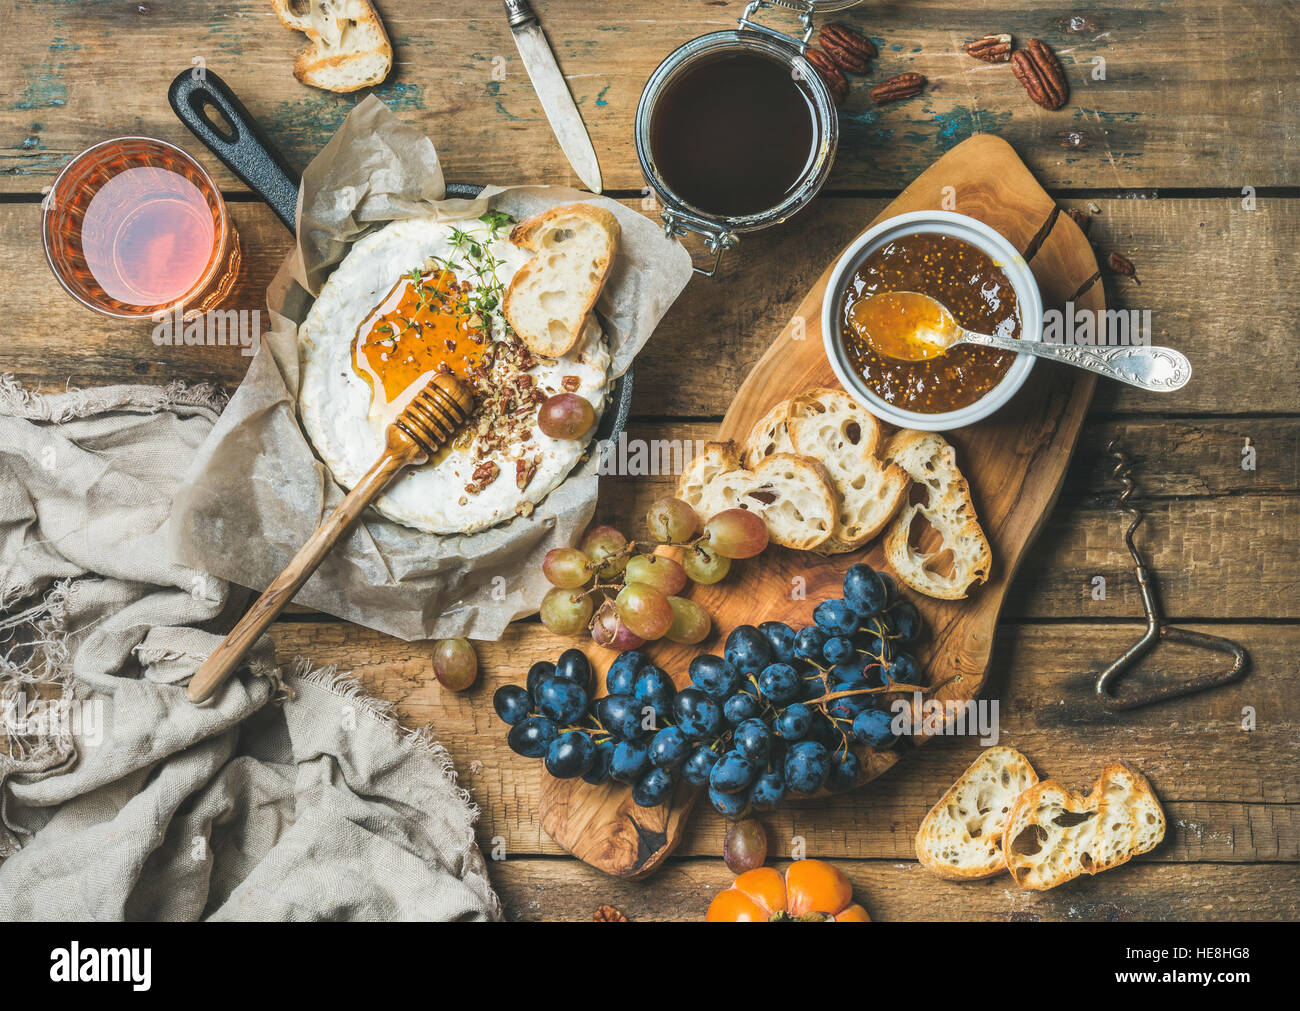 Cheese, fruit, nut and wine set over rustic wooden background - Stock Image